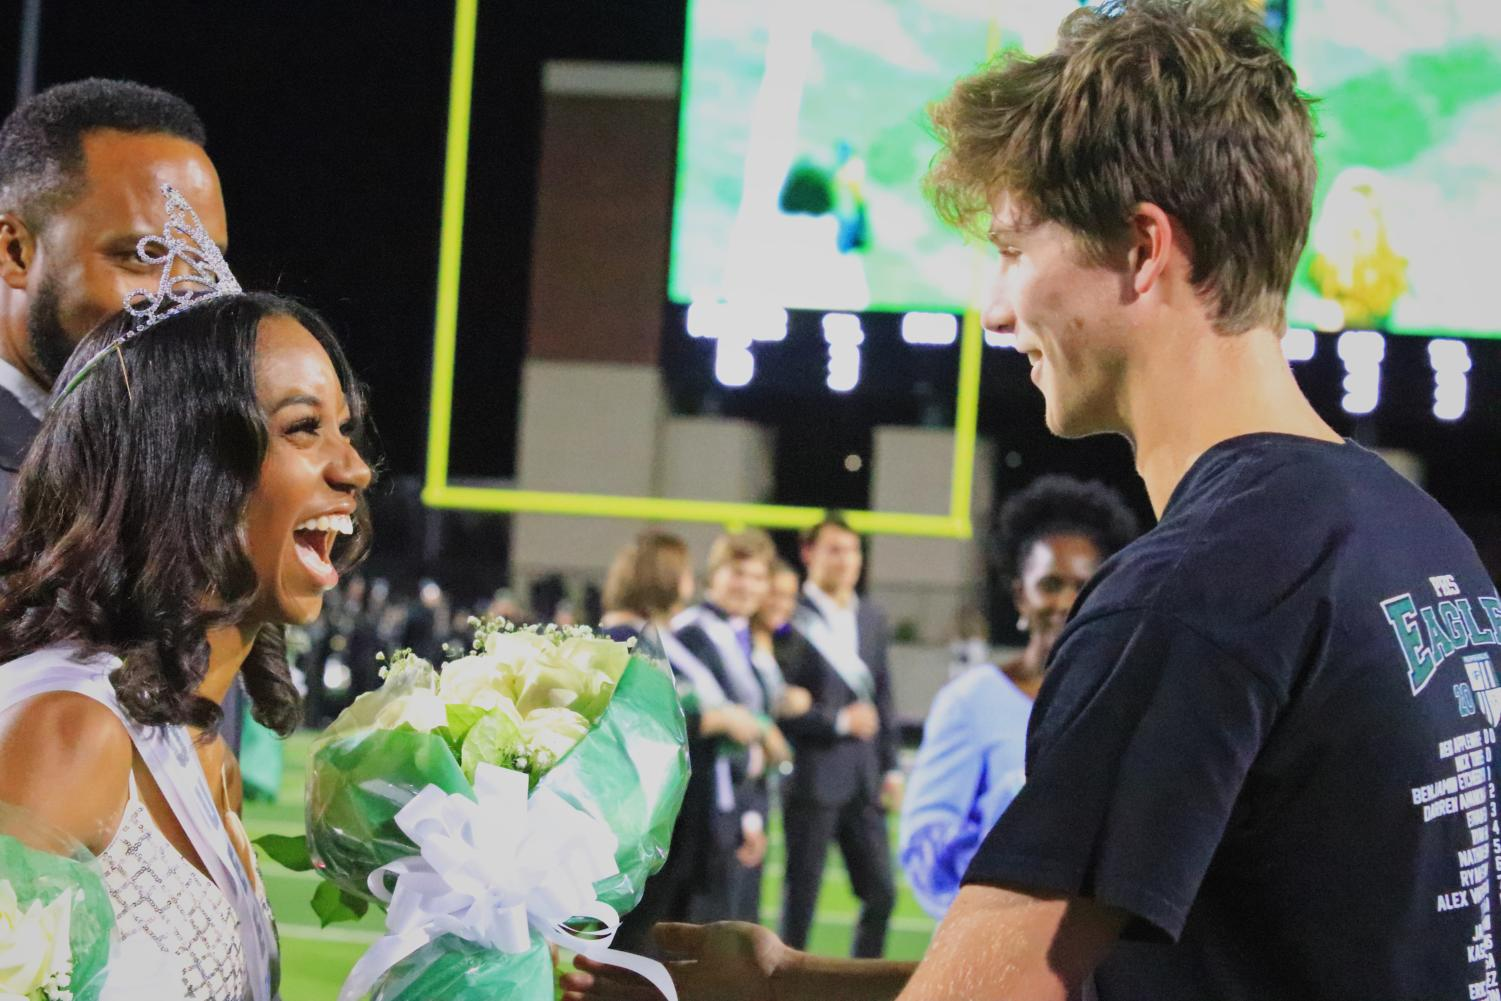 Student body president Preston Cutler hands homecoming queen Victoria Carpenter a bouquet of flowers. Carpenter ran alongside senior Panashe Ruswayi. They were also named sophomore homecoming court in 2017.